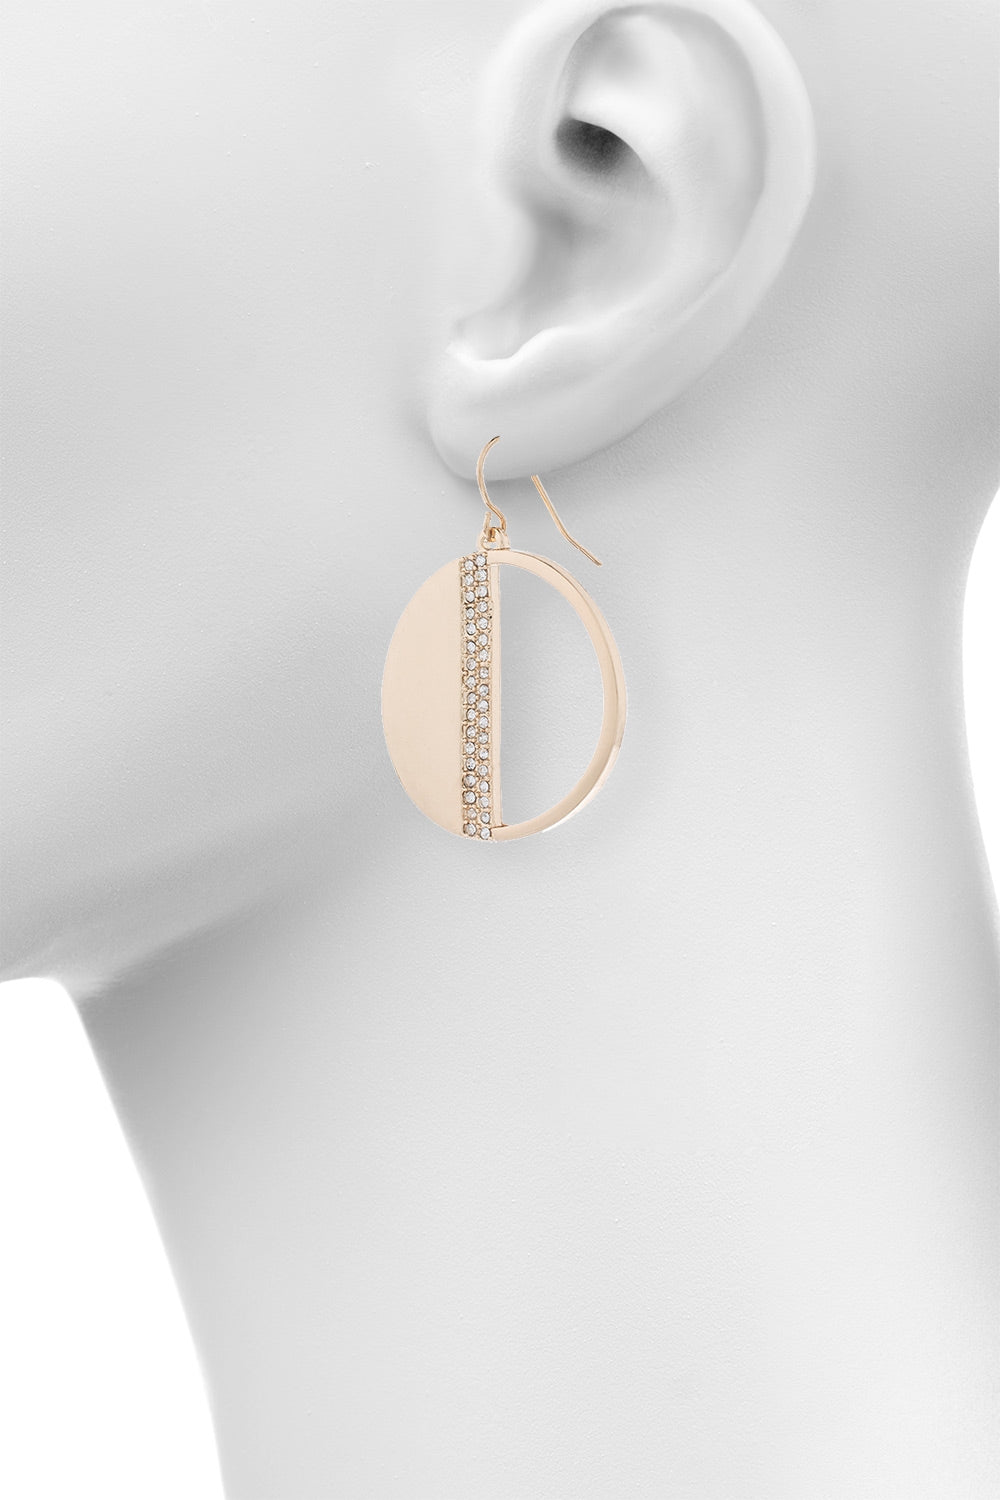 Type 1 Ride Through The Times Earrings